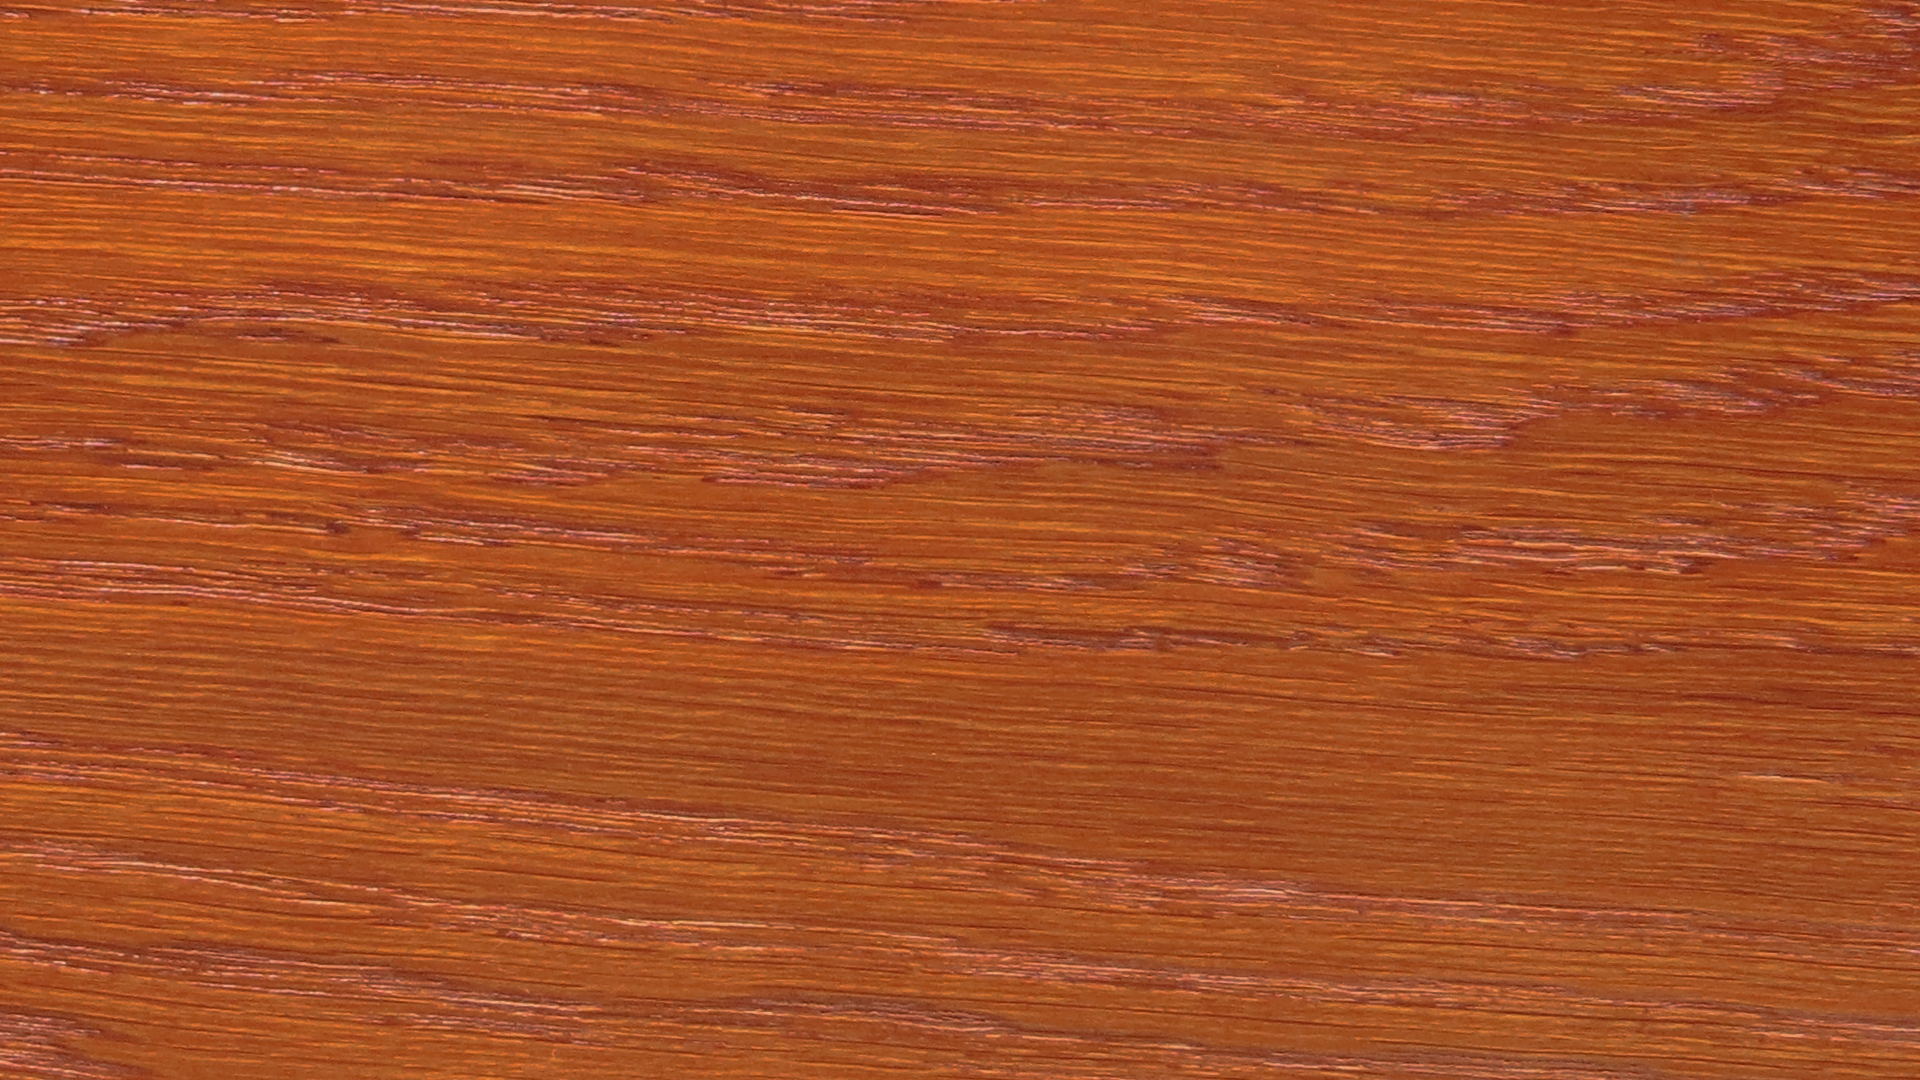 colorwood 21_57b7366bcab94